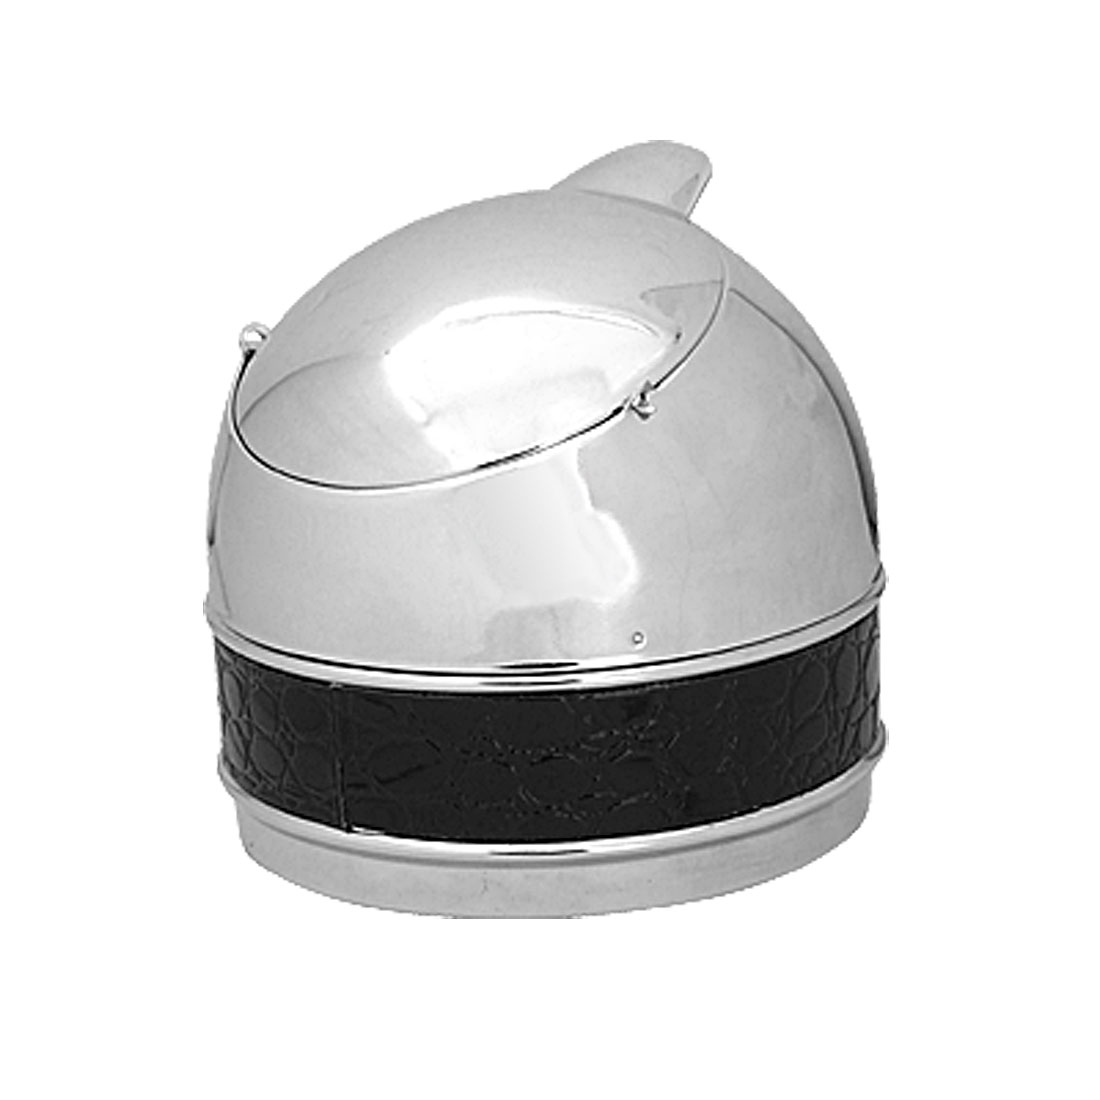 Home Restaurant Use Stainless Steel Smokeless Cigarette Ashtray